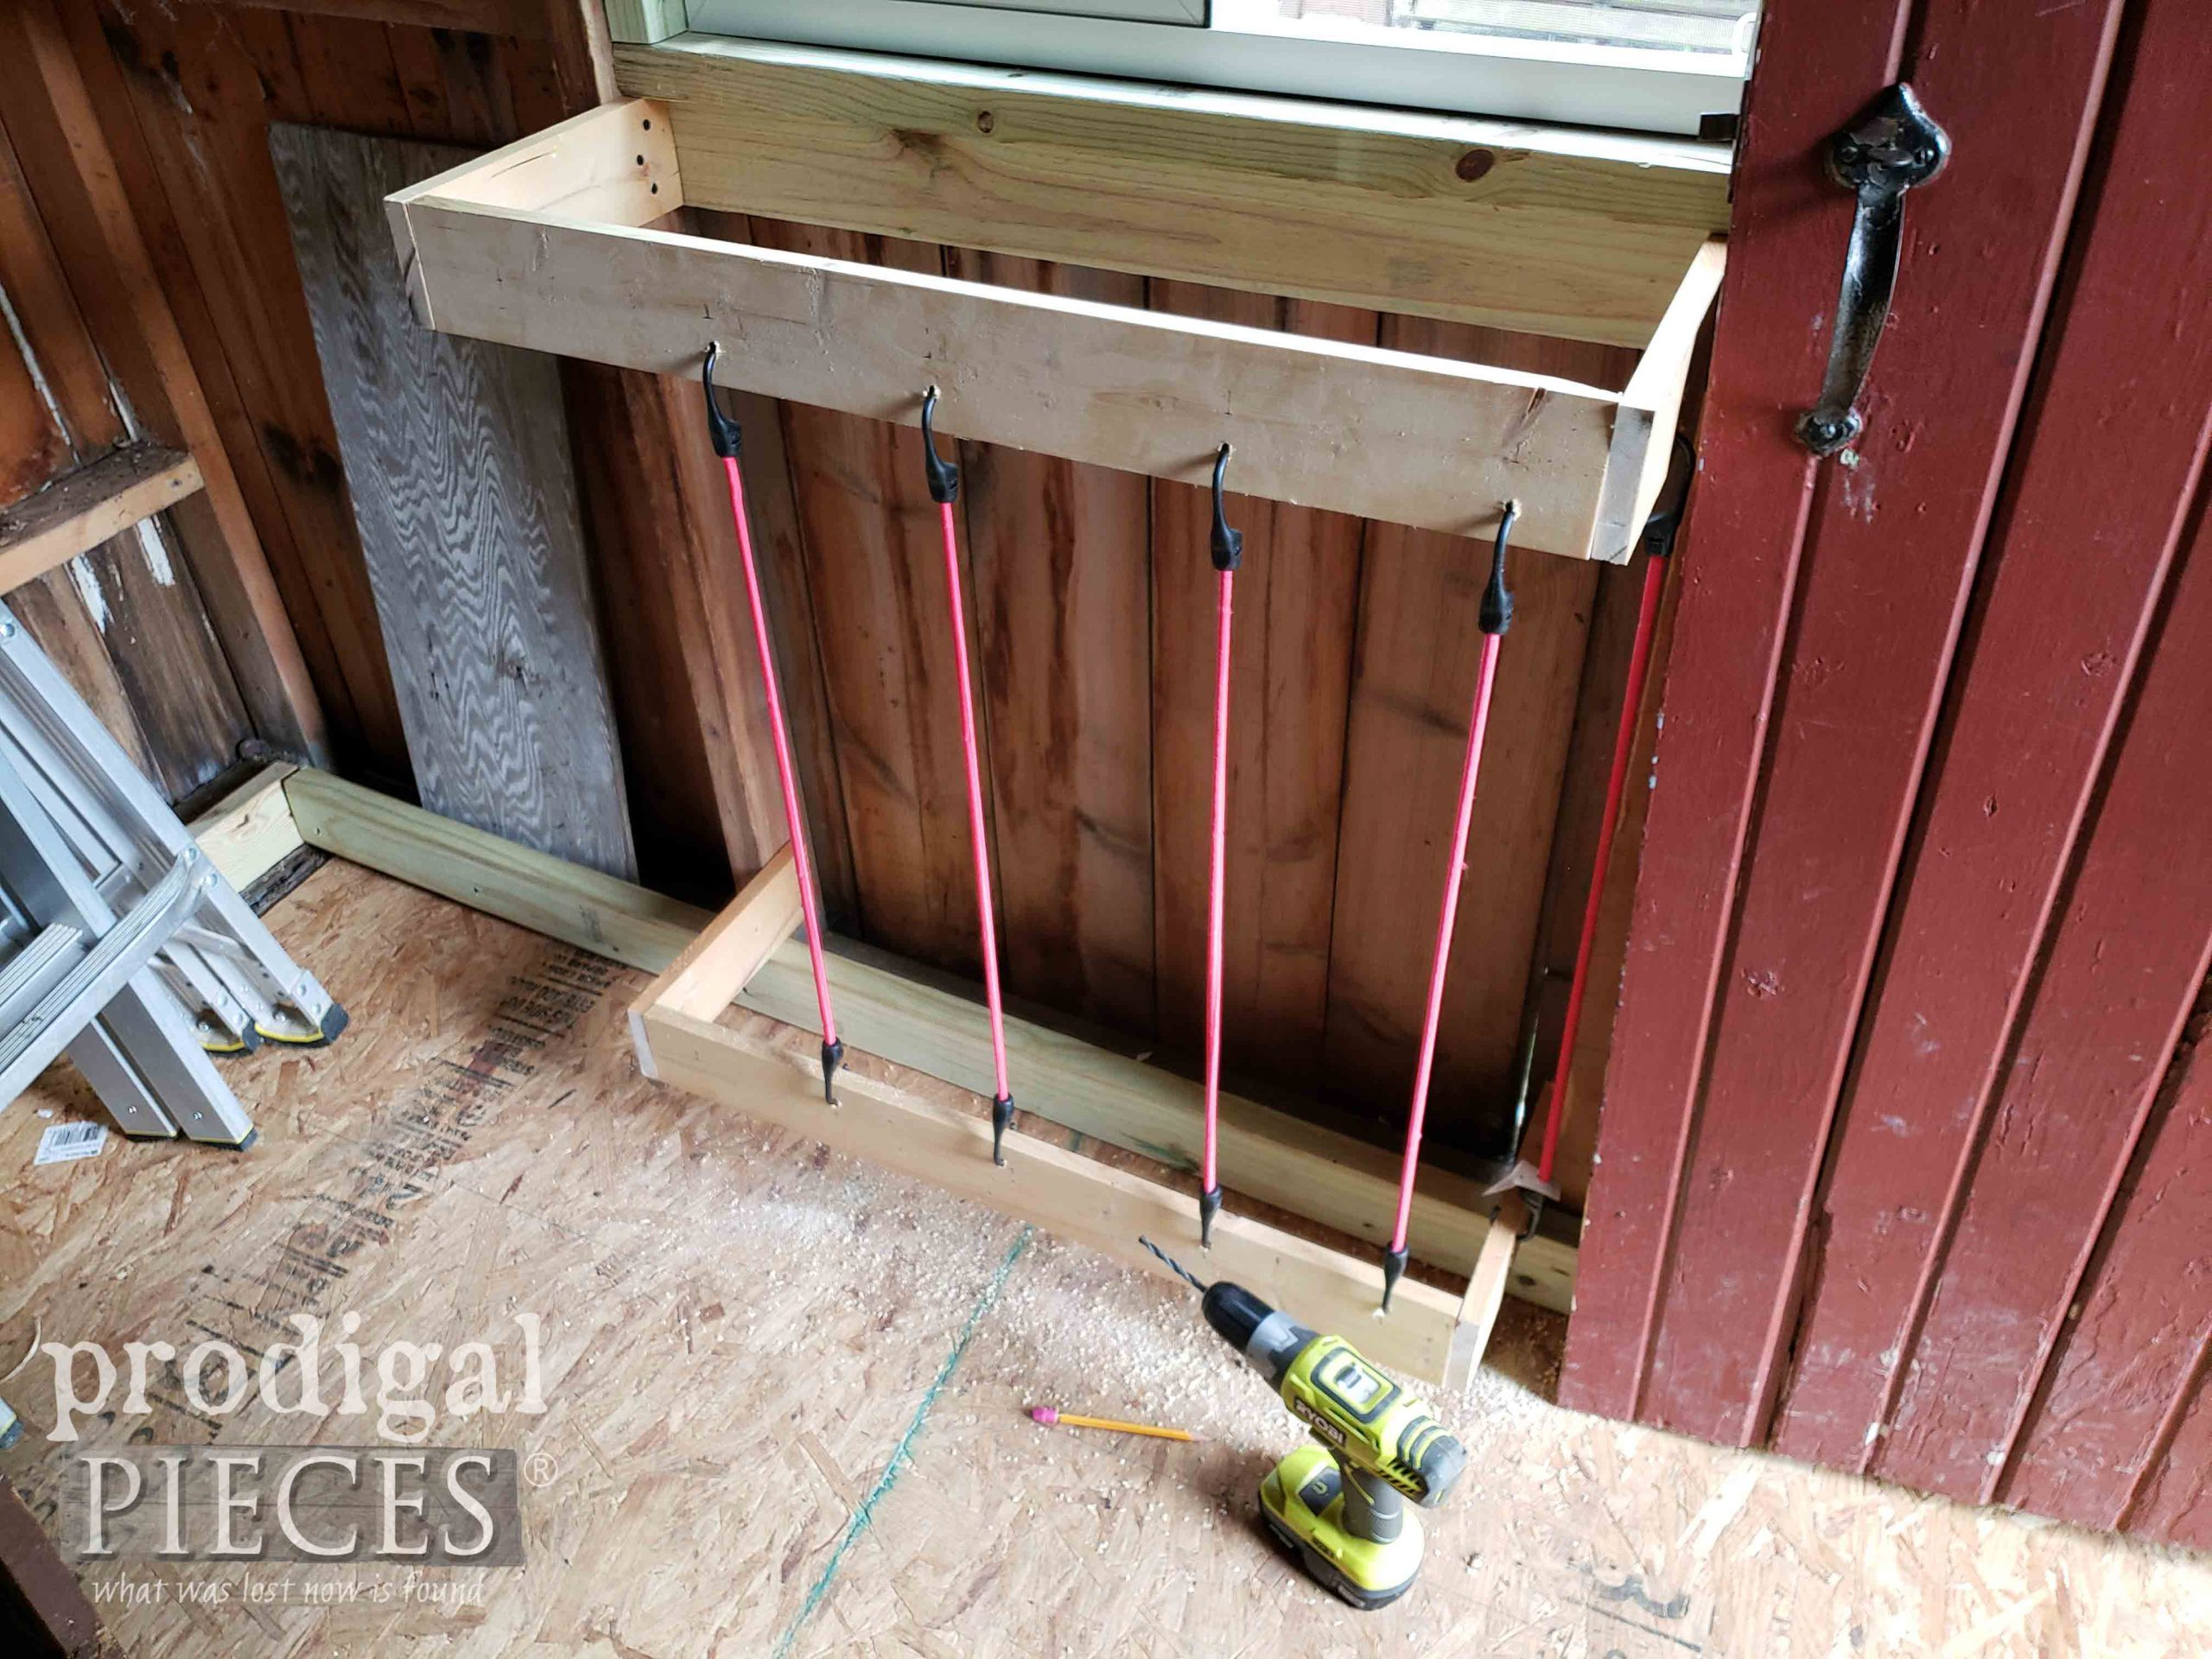 Ball Holder Bin for Garden Shed | prodigalpieces.com